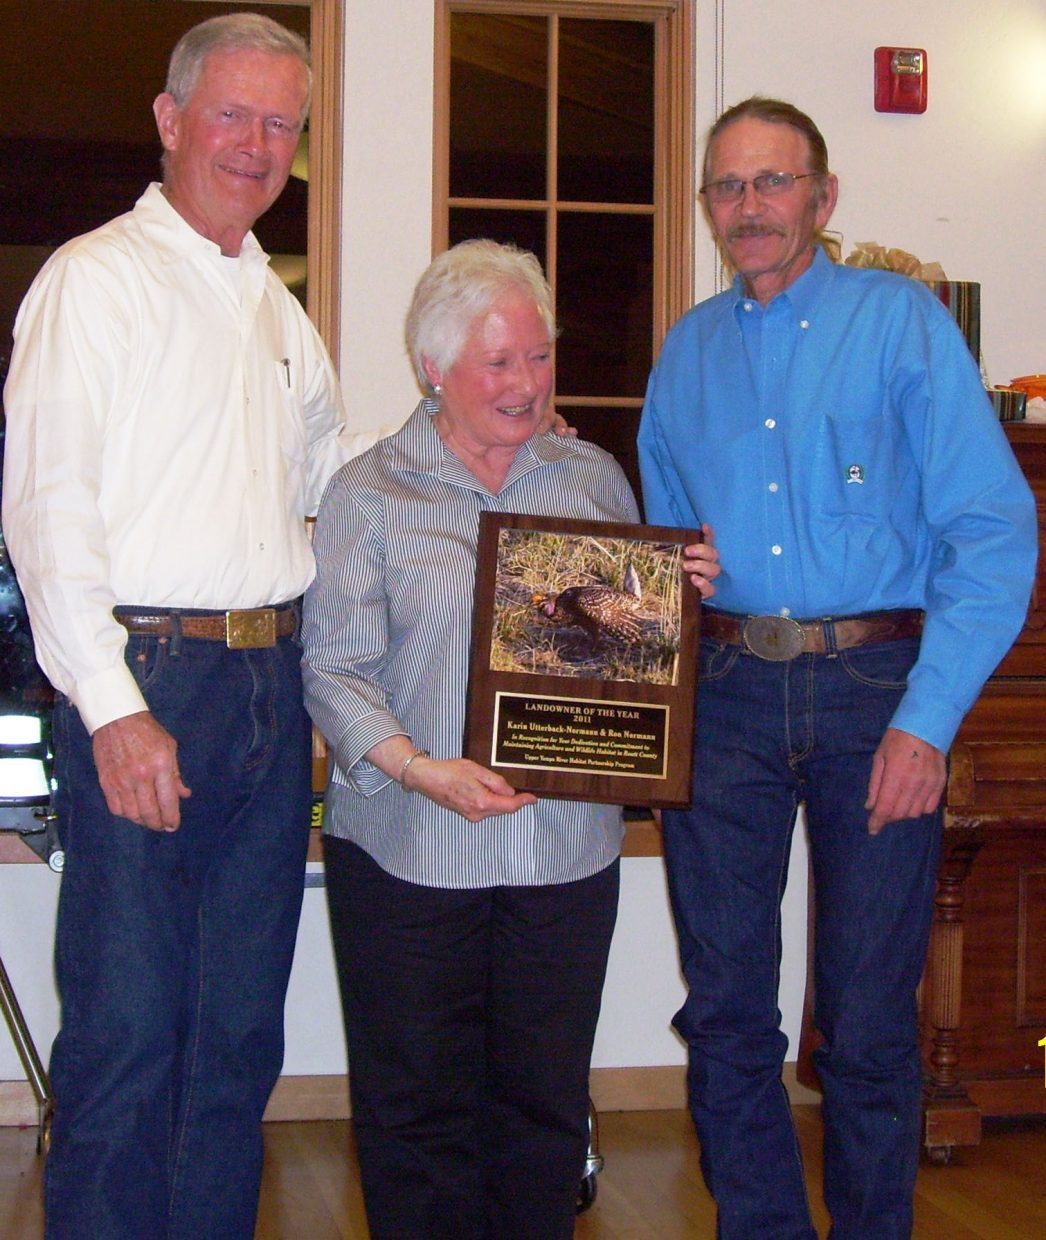 Ron Normann, from left, and Karin Utterback-Norman accept the 2011 Landowner of the Year award from Larry Monger, chairman of the Upper Yampa Habitat Partnership Program committee. They were honored Oct. 29 at the annual Agriculture Fall Gathering.